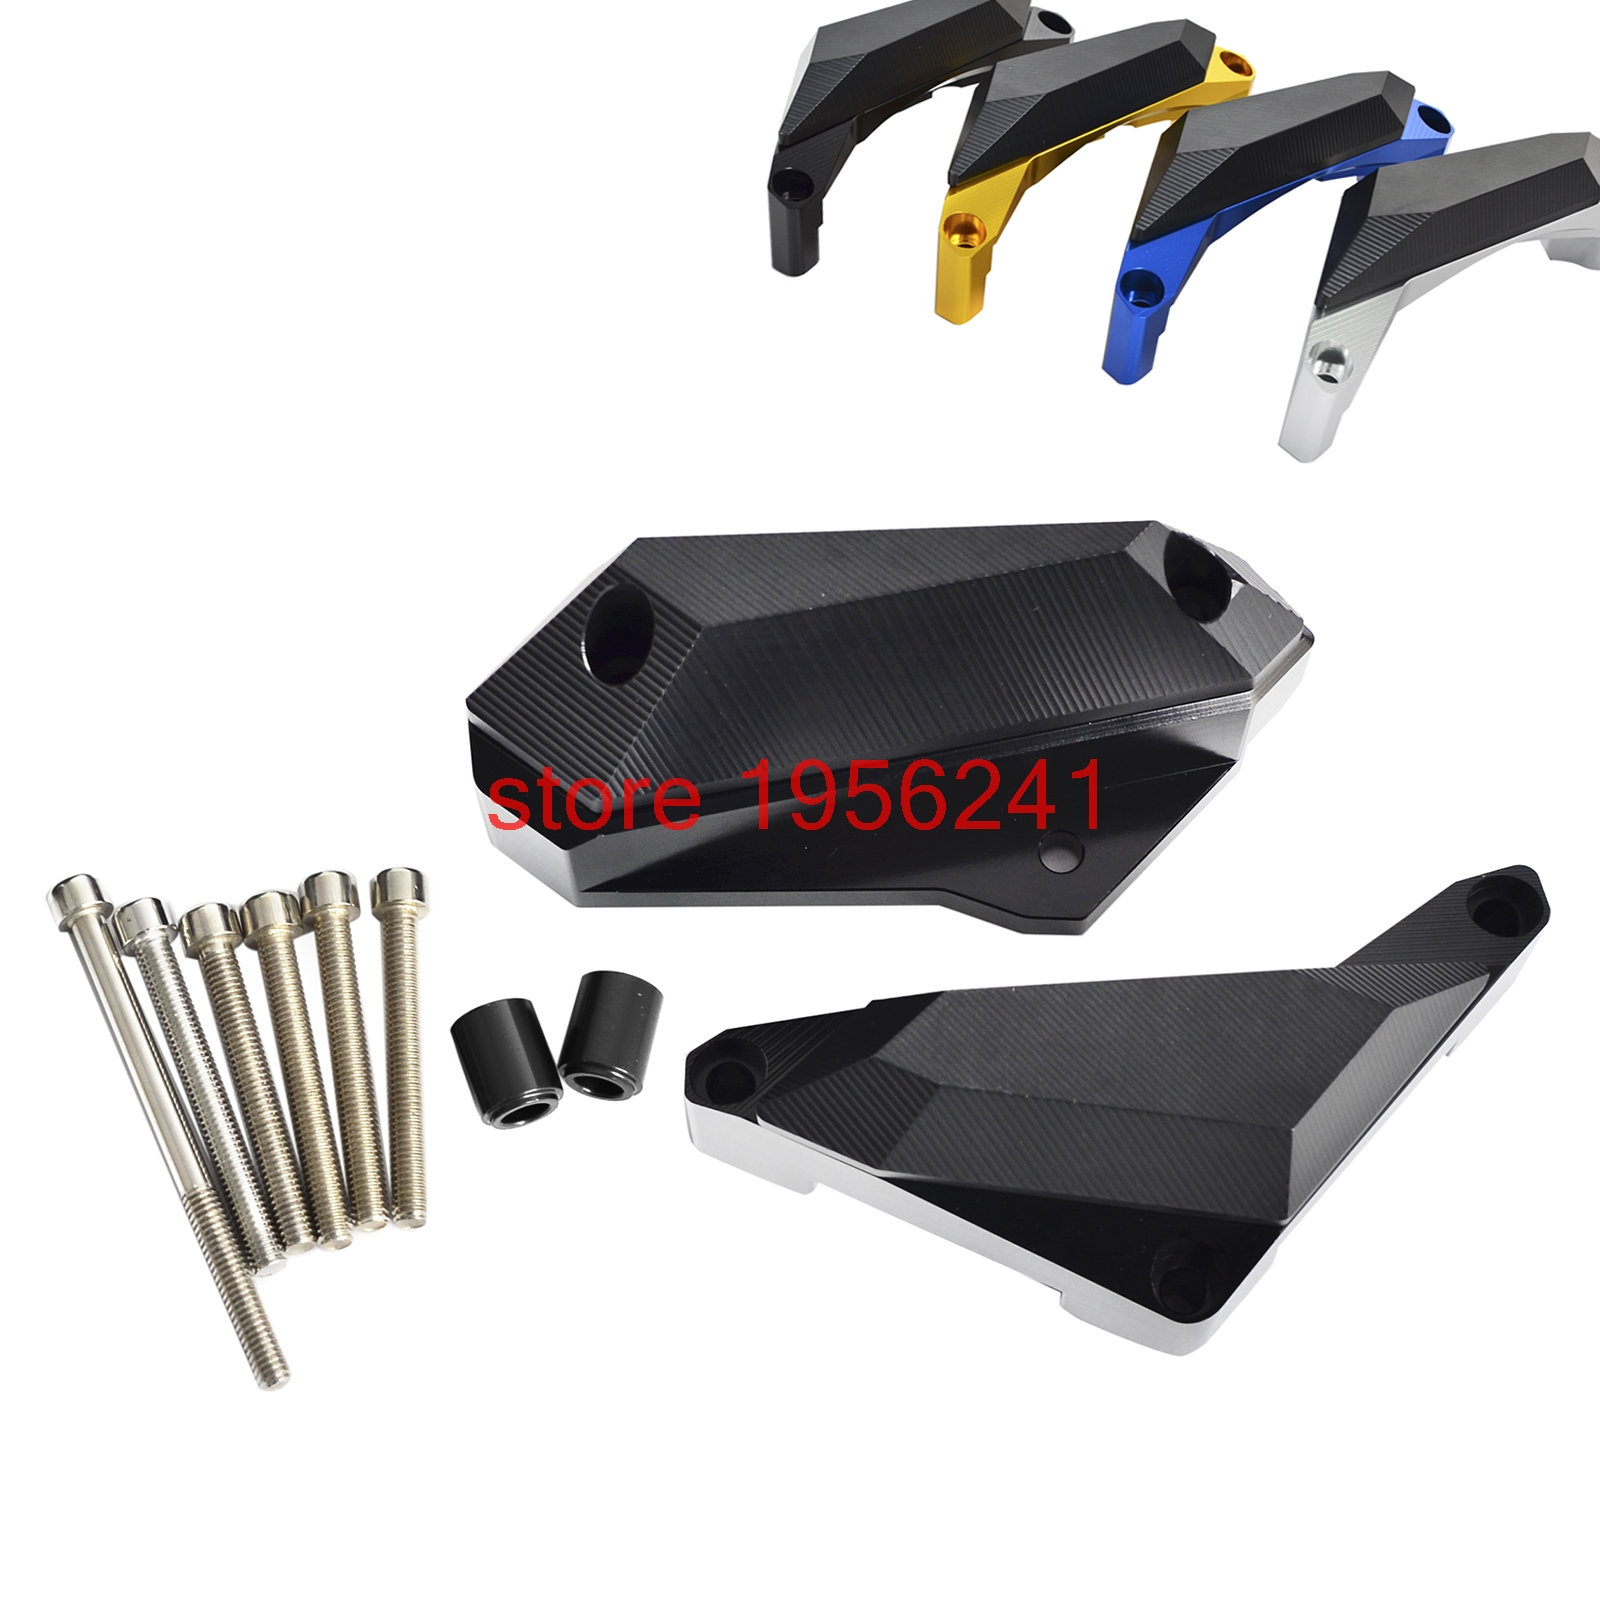 Motorcycle Engine Frame Slider Stator Case Guard Cover Protector For Yamaha YZFR3 YZF-R3 2015 2016 YZFR25 YZF-R25 2013 2014 2015 2014 2015 2016 yzf r3 r25 abs injection fairing kit for yamaha yzfr3 yzfr25 pearl white complete fairings body kit cowling